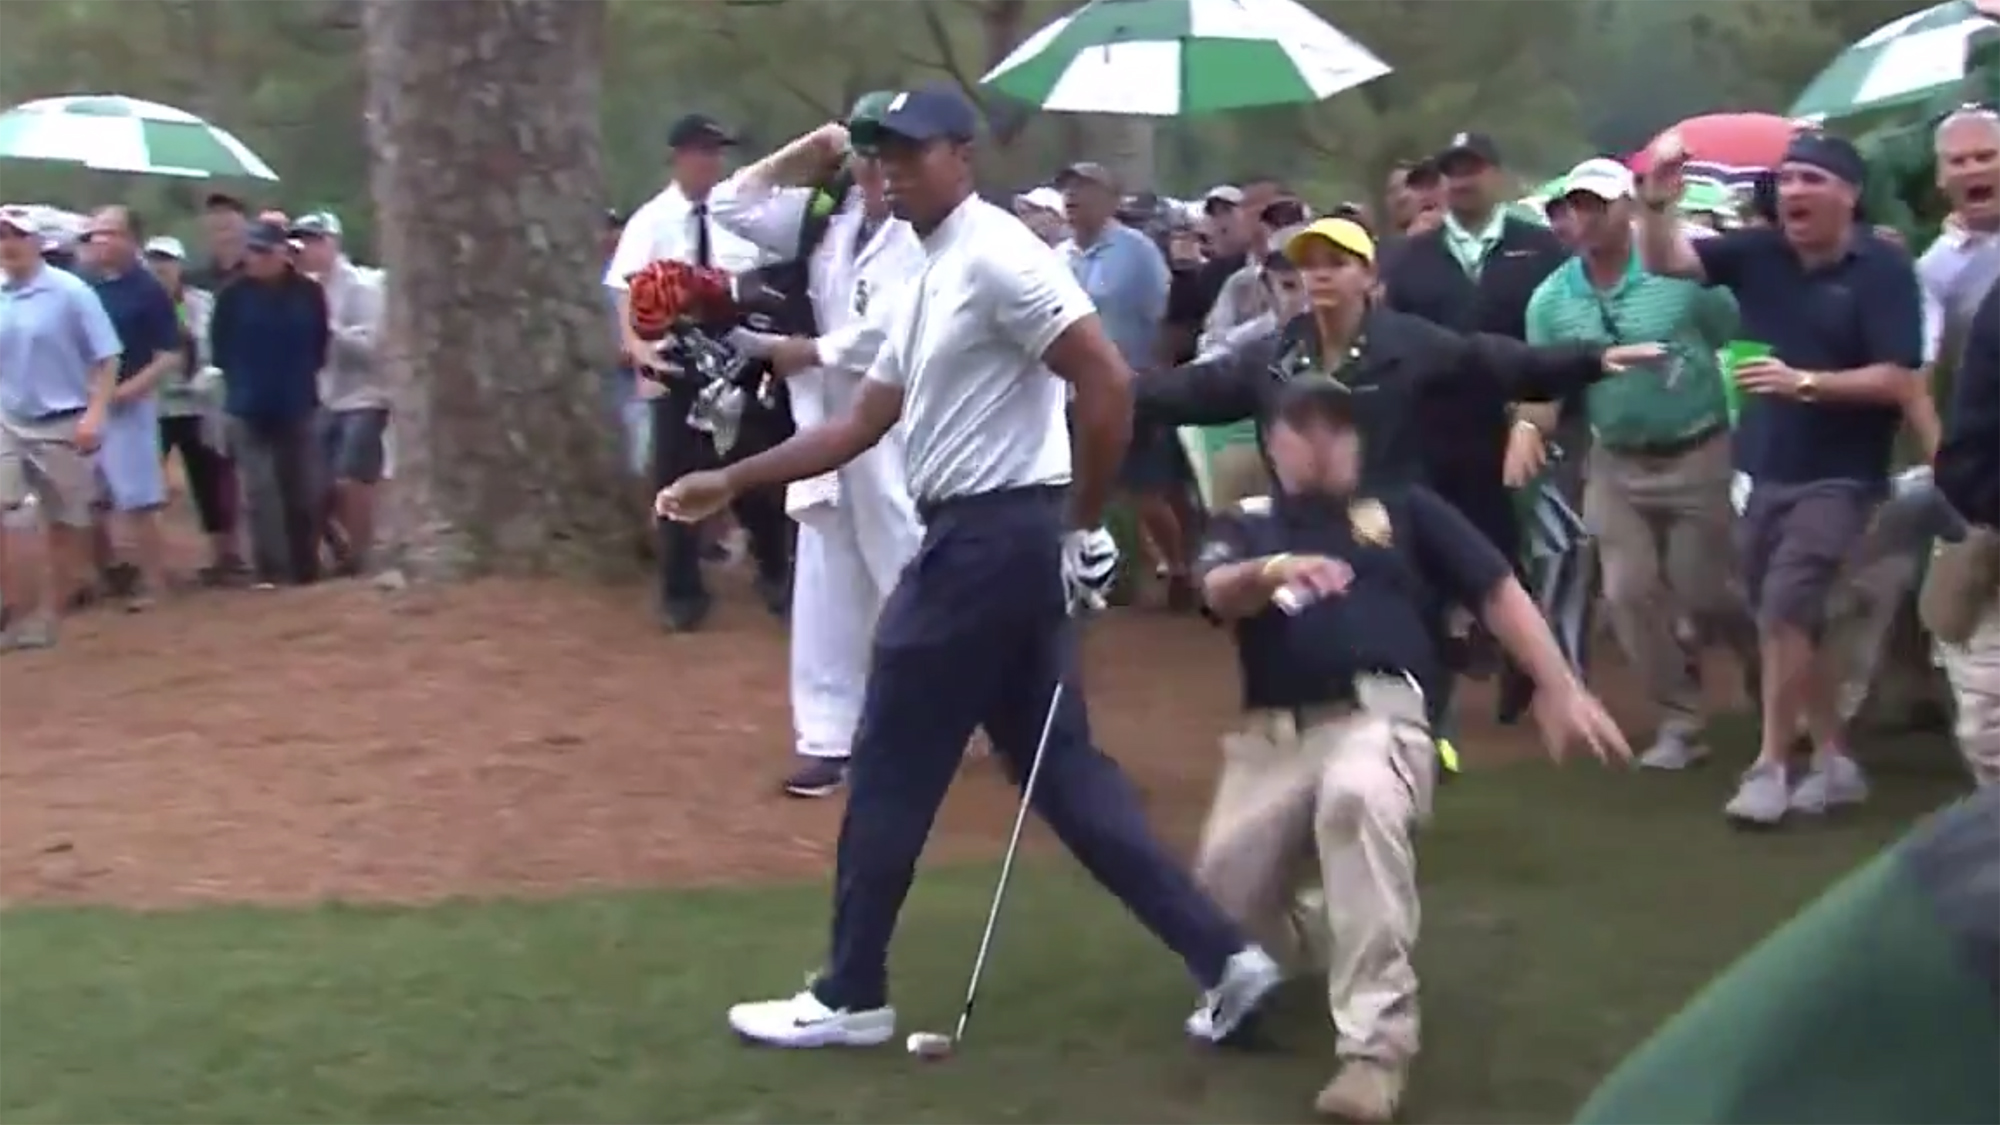 Tiger Woods fall masters augusta national security guard